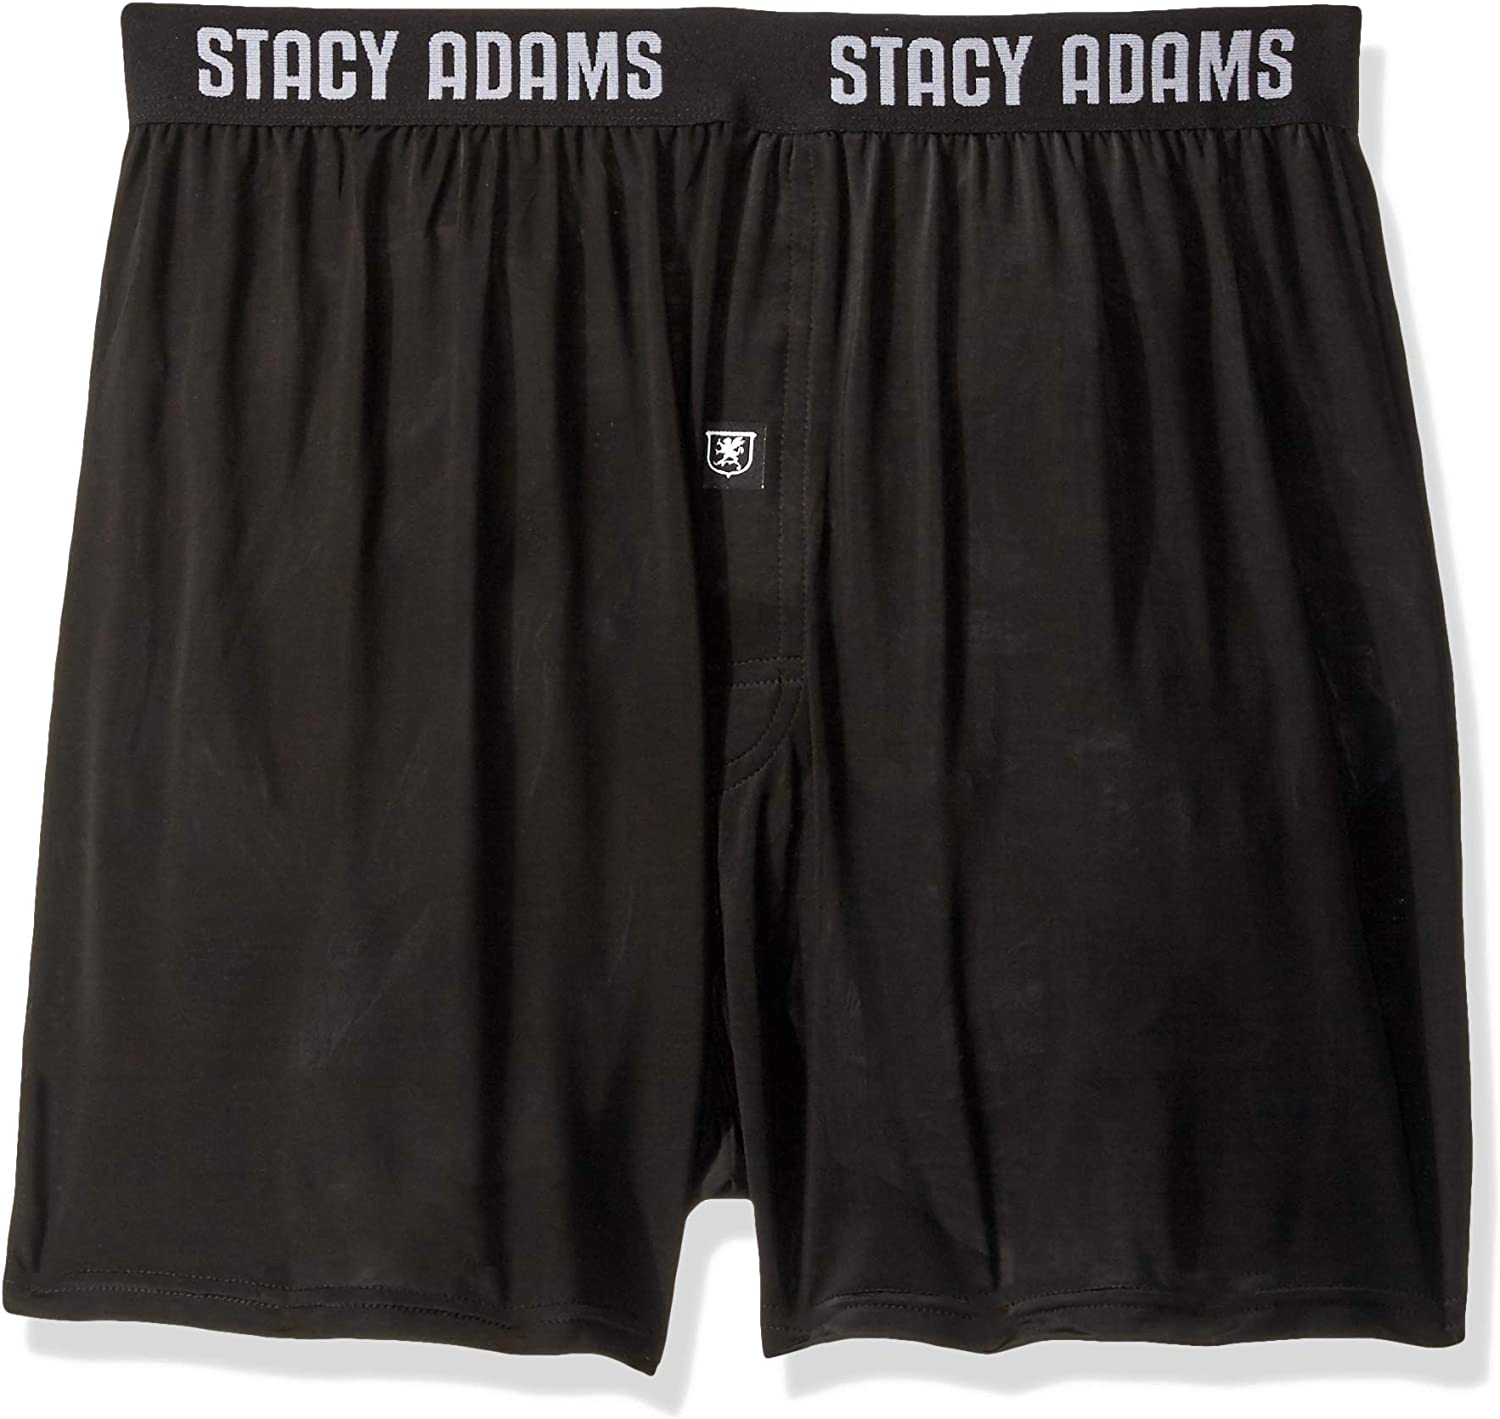 Stacy Adams Men's Big and Tall Boxer Short